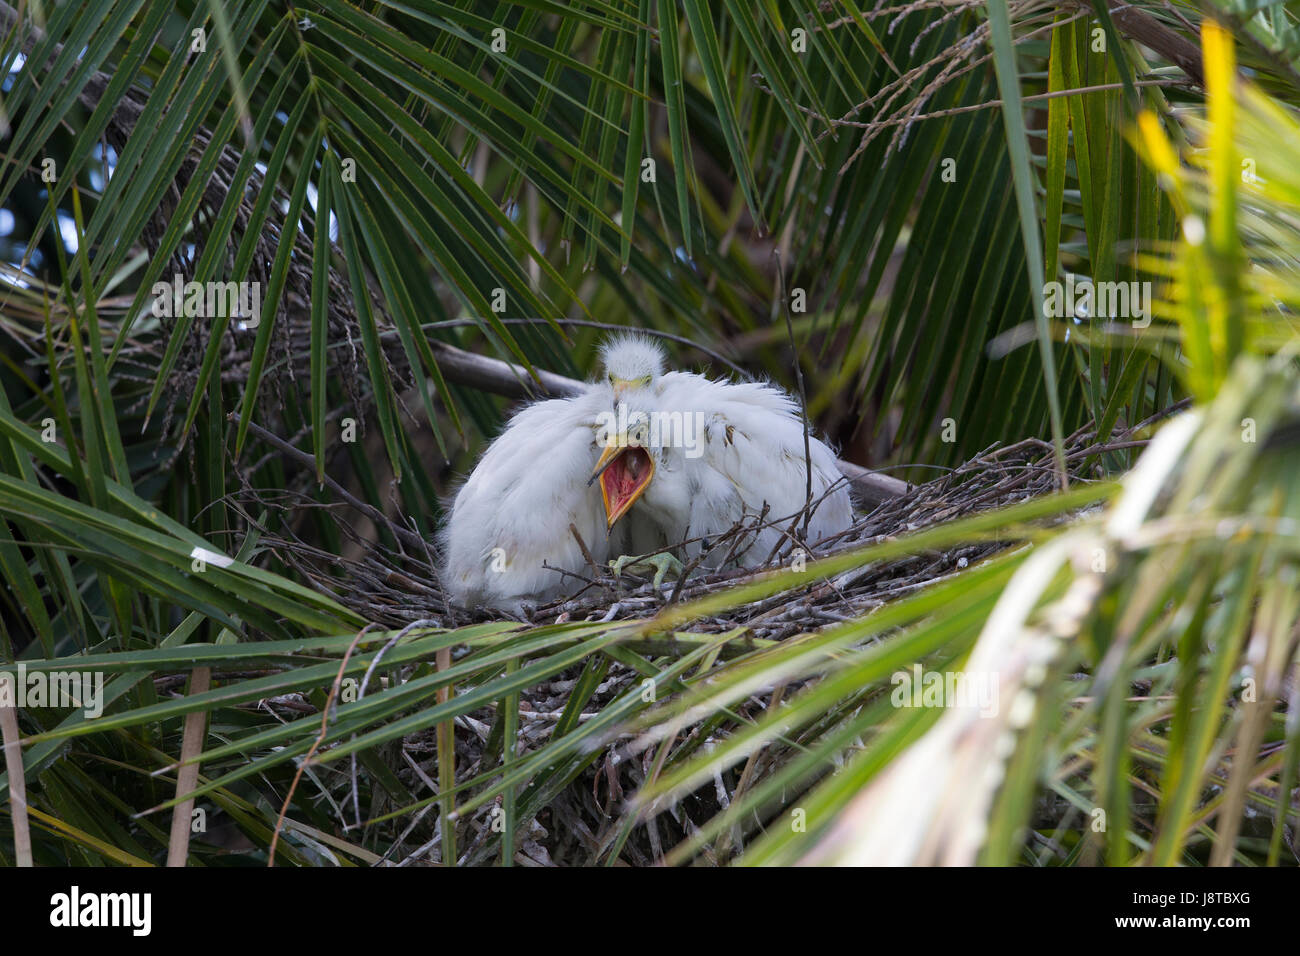 Snowy Egret Chick in Nest Yawning - Stock Image